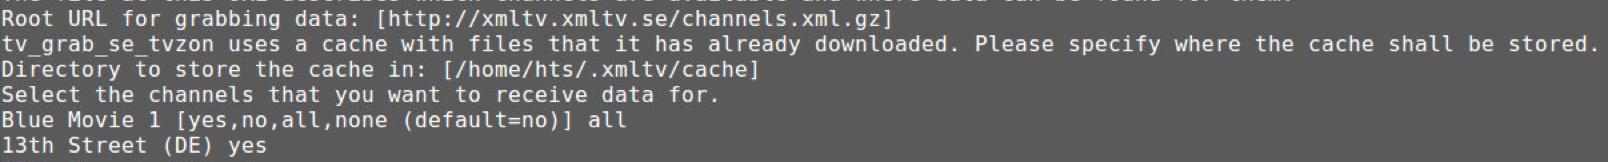 I'm trying but I can't in no way: setting epg - Tvheadend